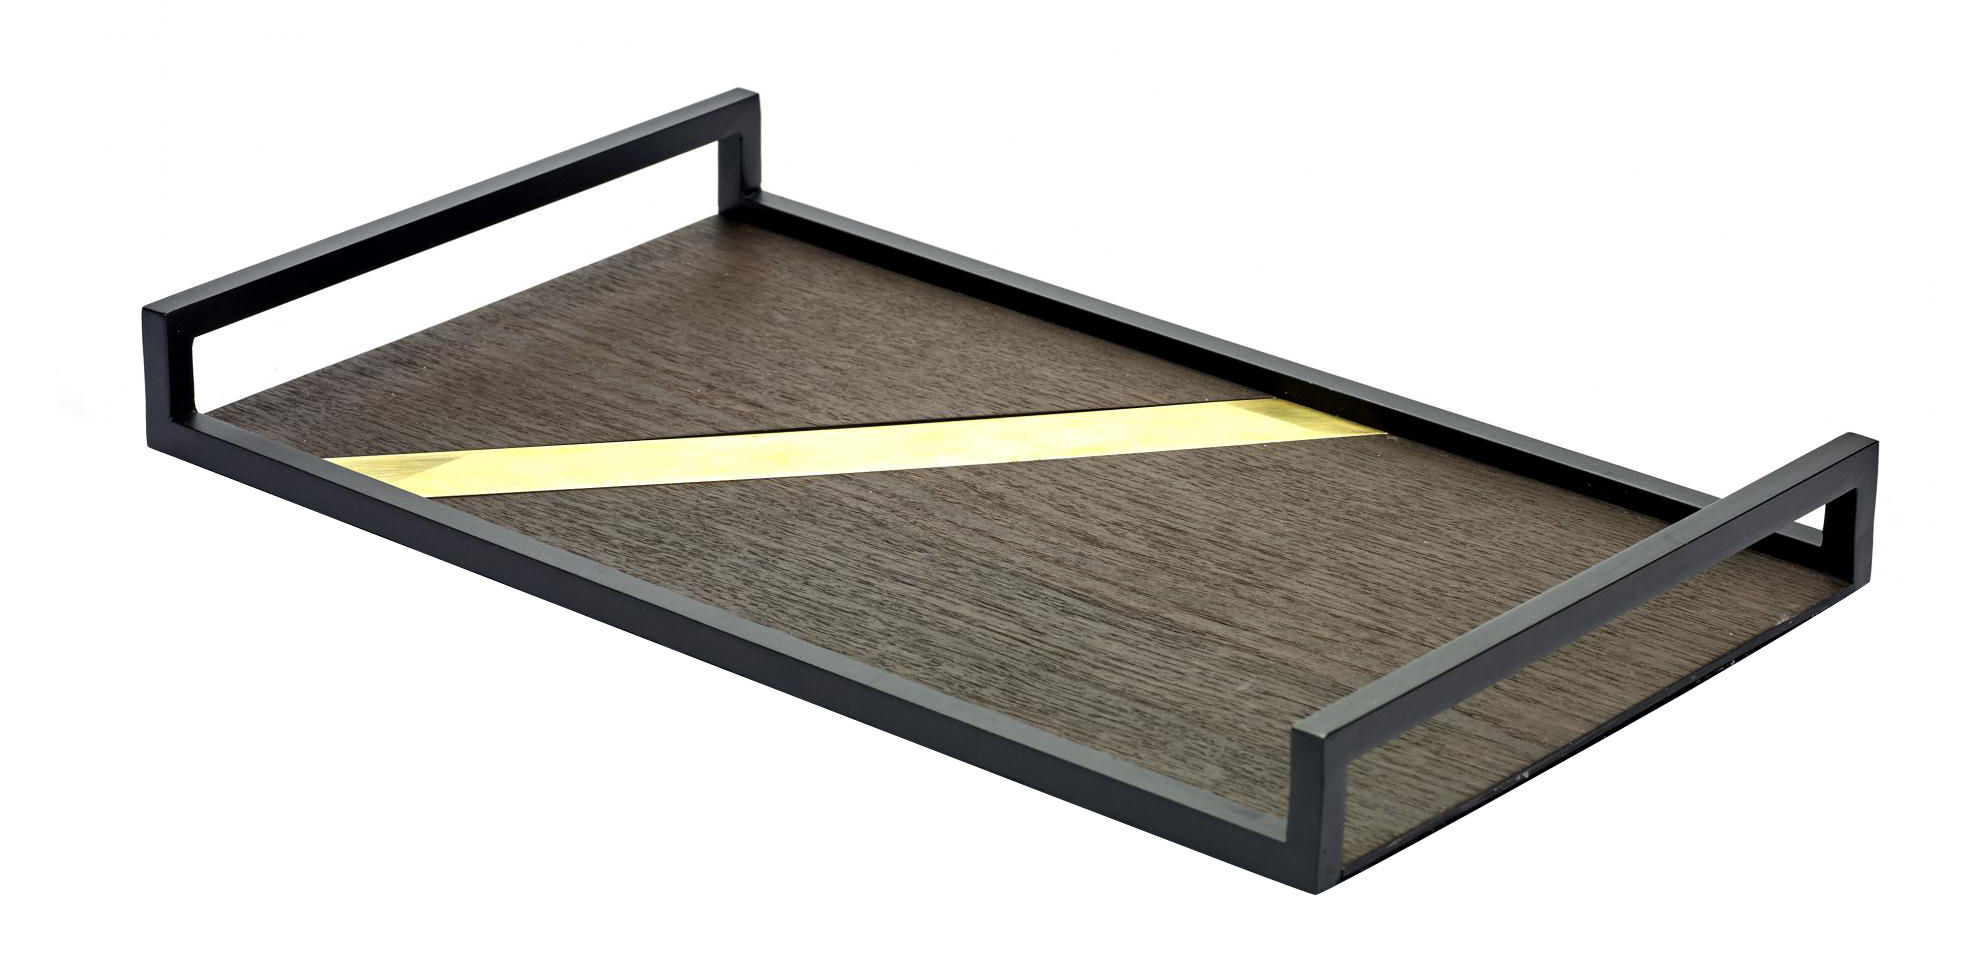 Tableware - Trays - Charles Tray - 40 x 24 cm -  Wood & metal by Serax - Wood xwith brass line / Black frame - Brass, Lacquered steel, Wood